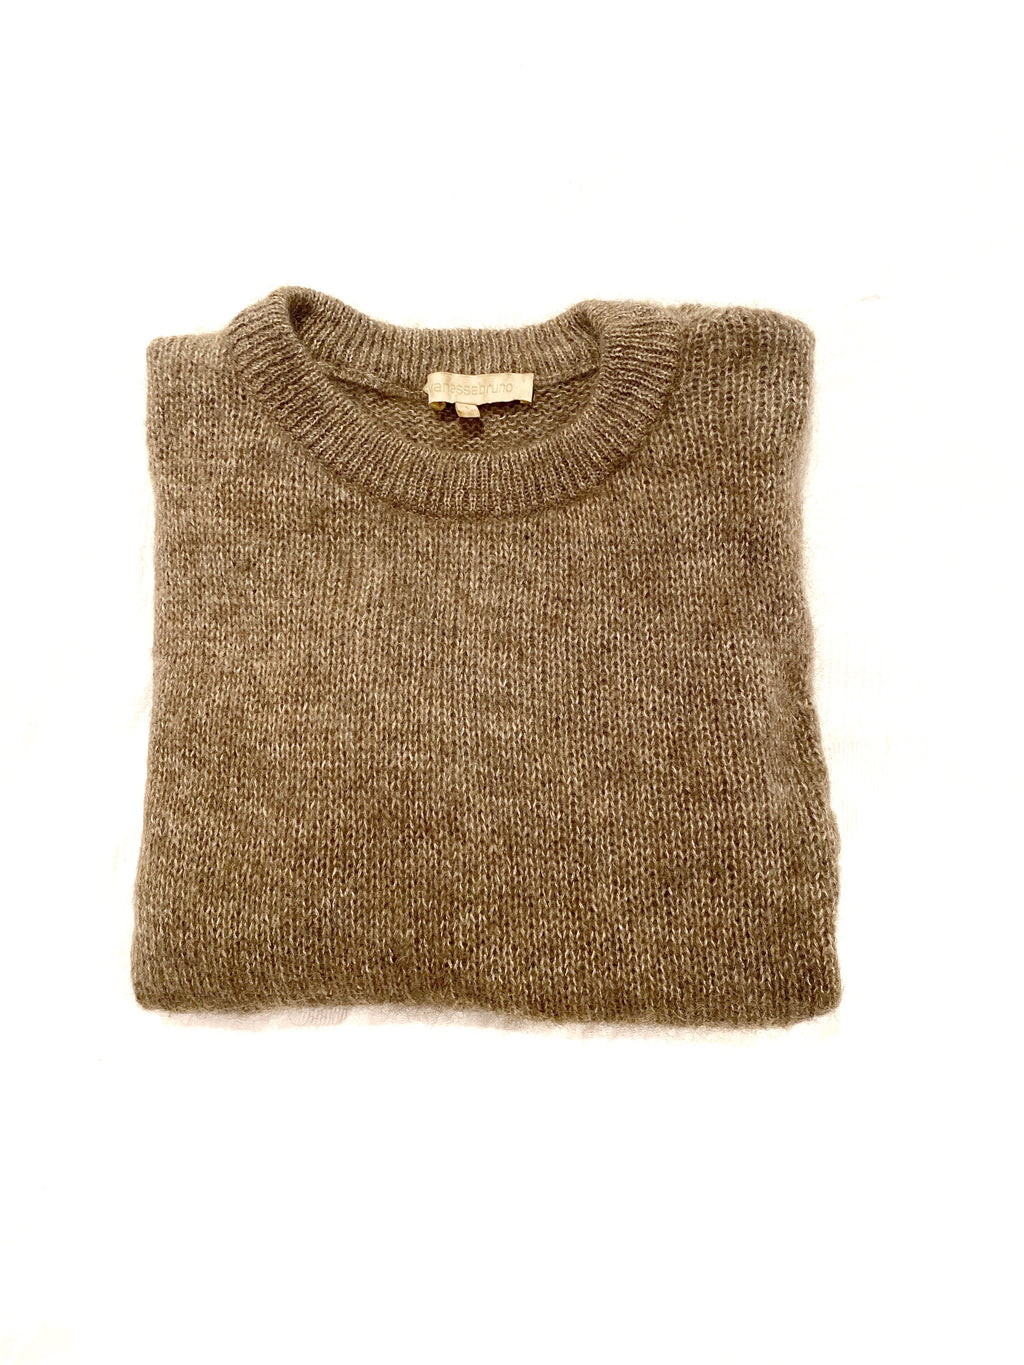 vanessa bruno sweater, mohair, beige colour, size 1